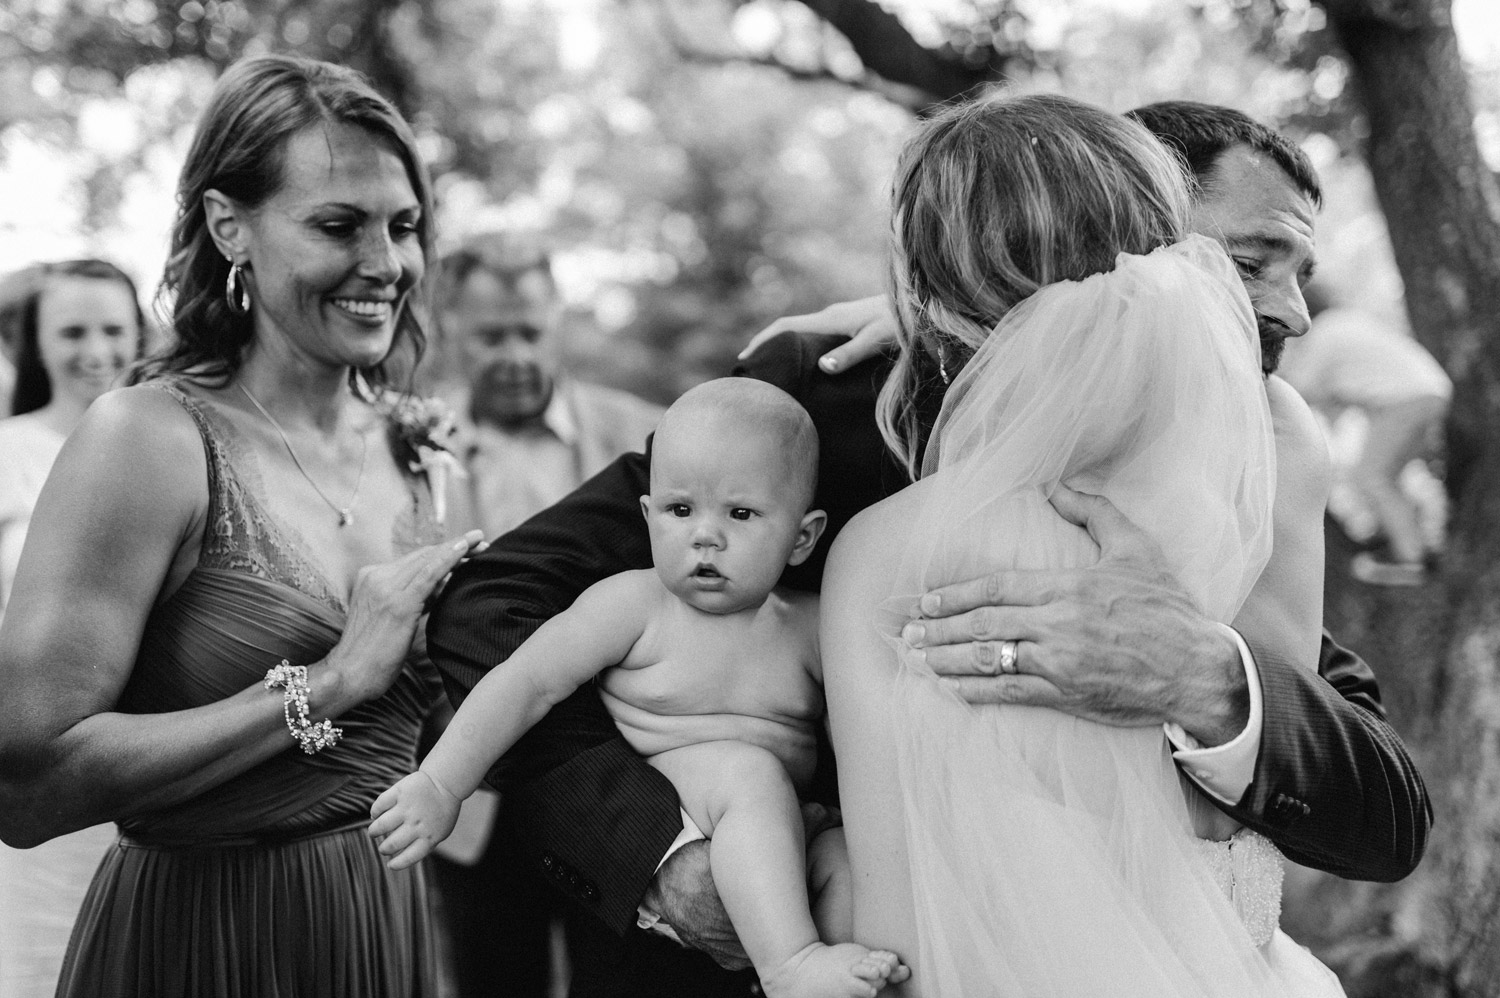 Candid of bride celebrating with family after ceremony at rustic oaks by geneoh photography